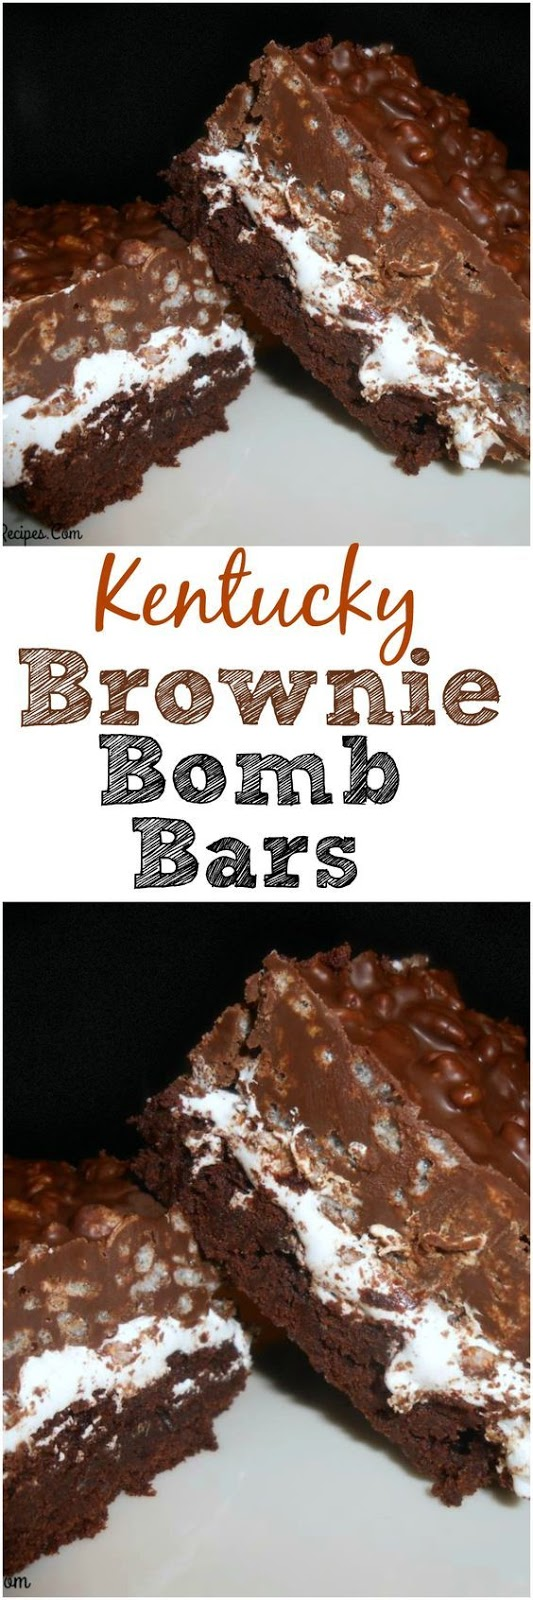 Brownie BOMB Bars